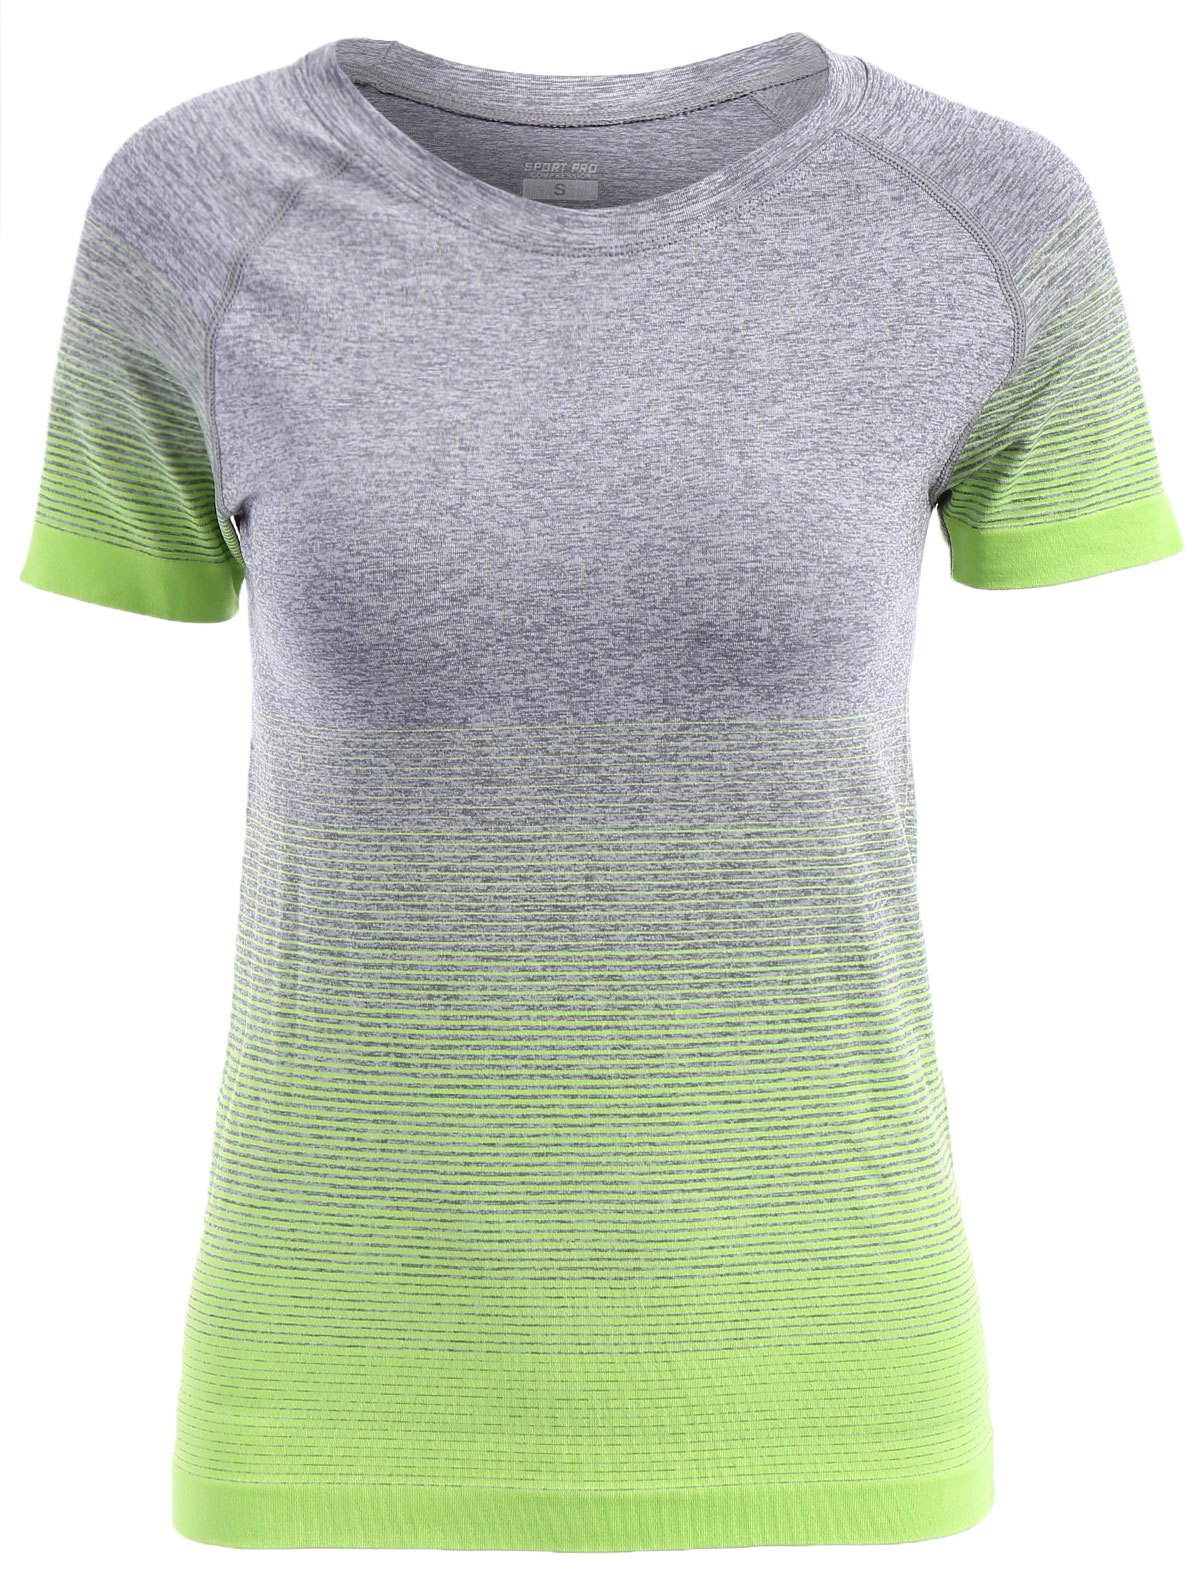 Trendy Jewel Neck Gradient Color Short Sleeve Sport T-Shirt For Women - APPLE GREEN L